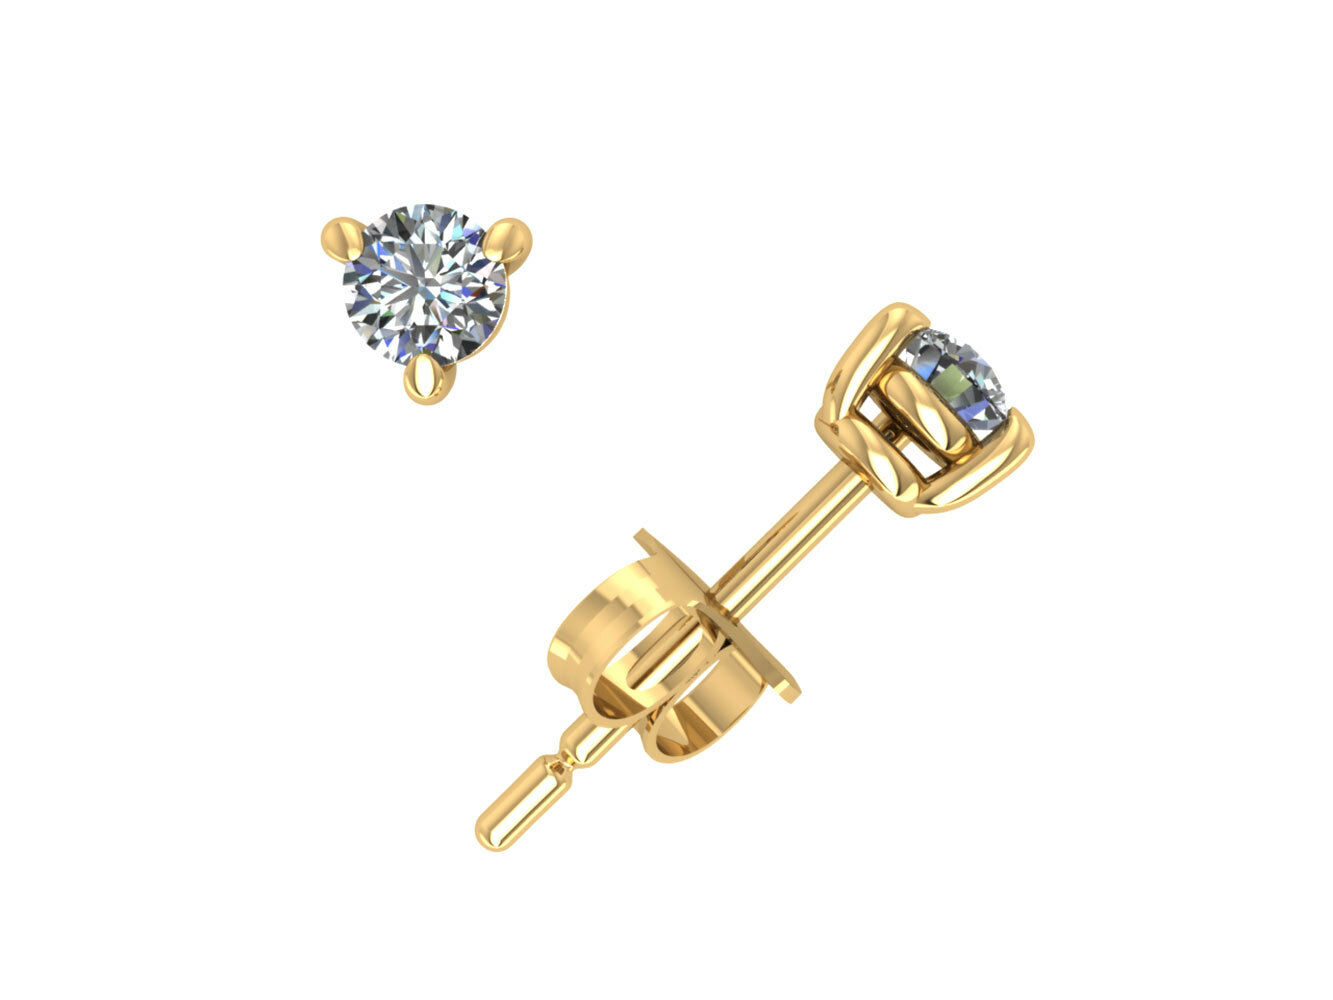 0.2Ct Round Diamond Basket Solitaire Stud Earrings 14k Yellow gold 3Prong I SI2